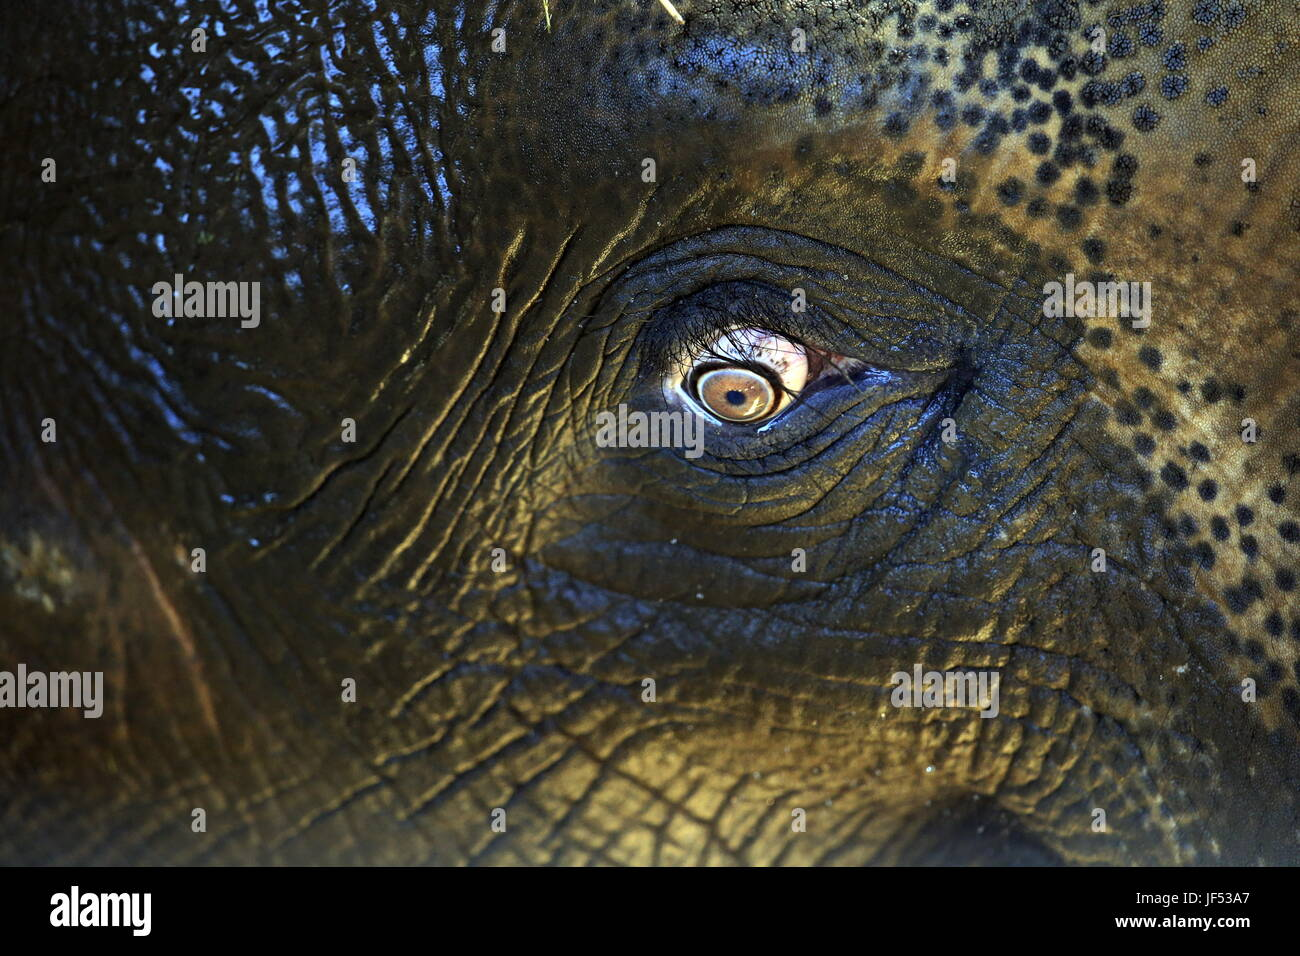 ROSTOV-ON-DON, RUSSIA – JUNE 28, 2017: An eye of an elephant at the Rostov-on-Don Zoo. Valery Matytsin/TASS - Stock Image